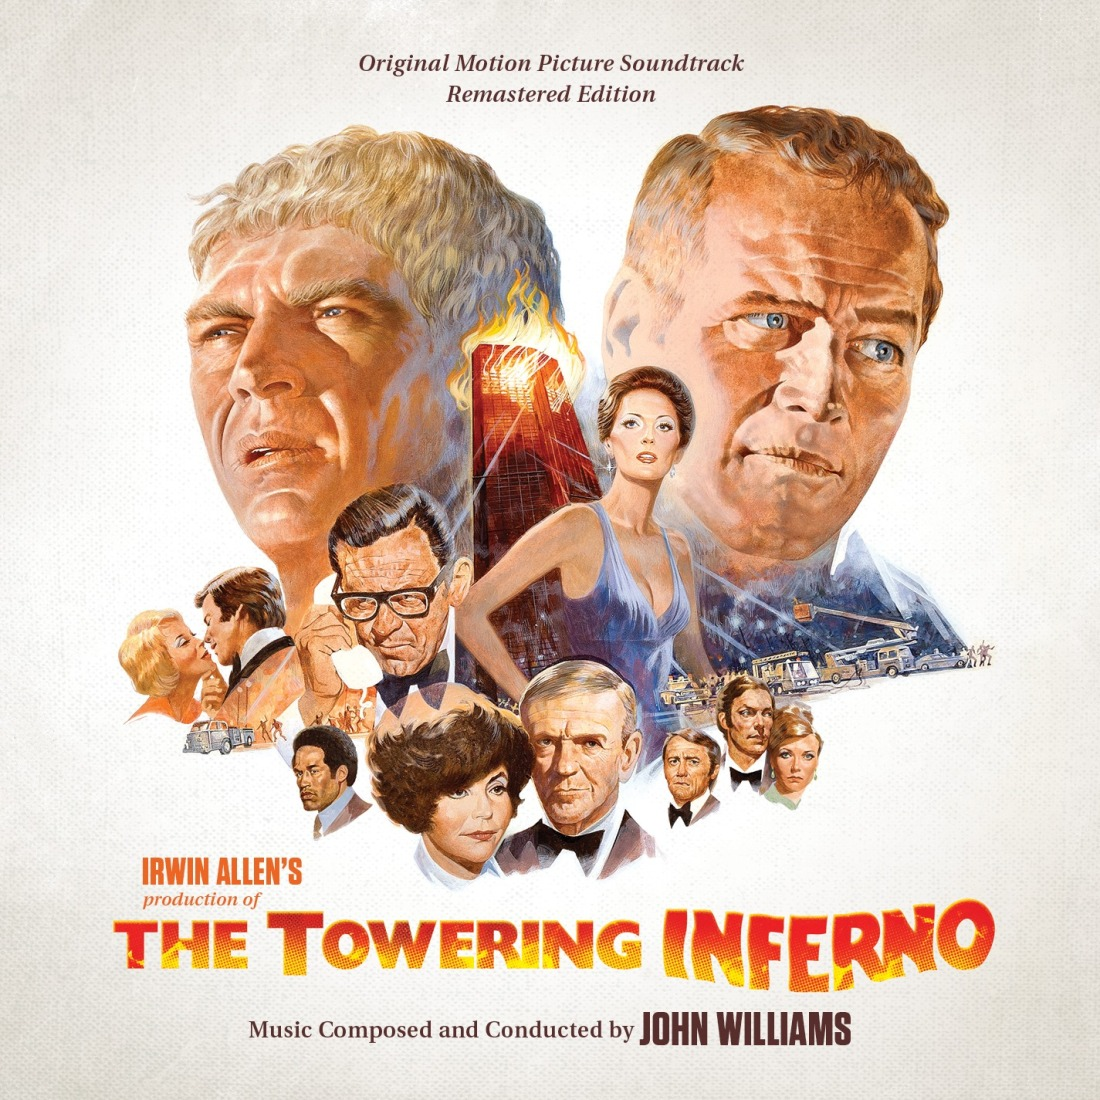 ToweringInferno_LLL